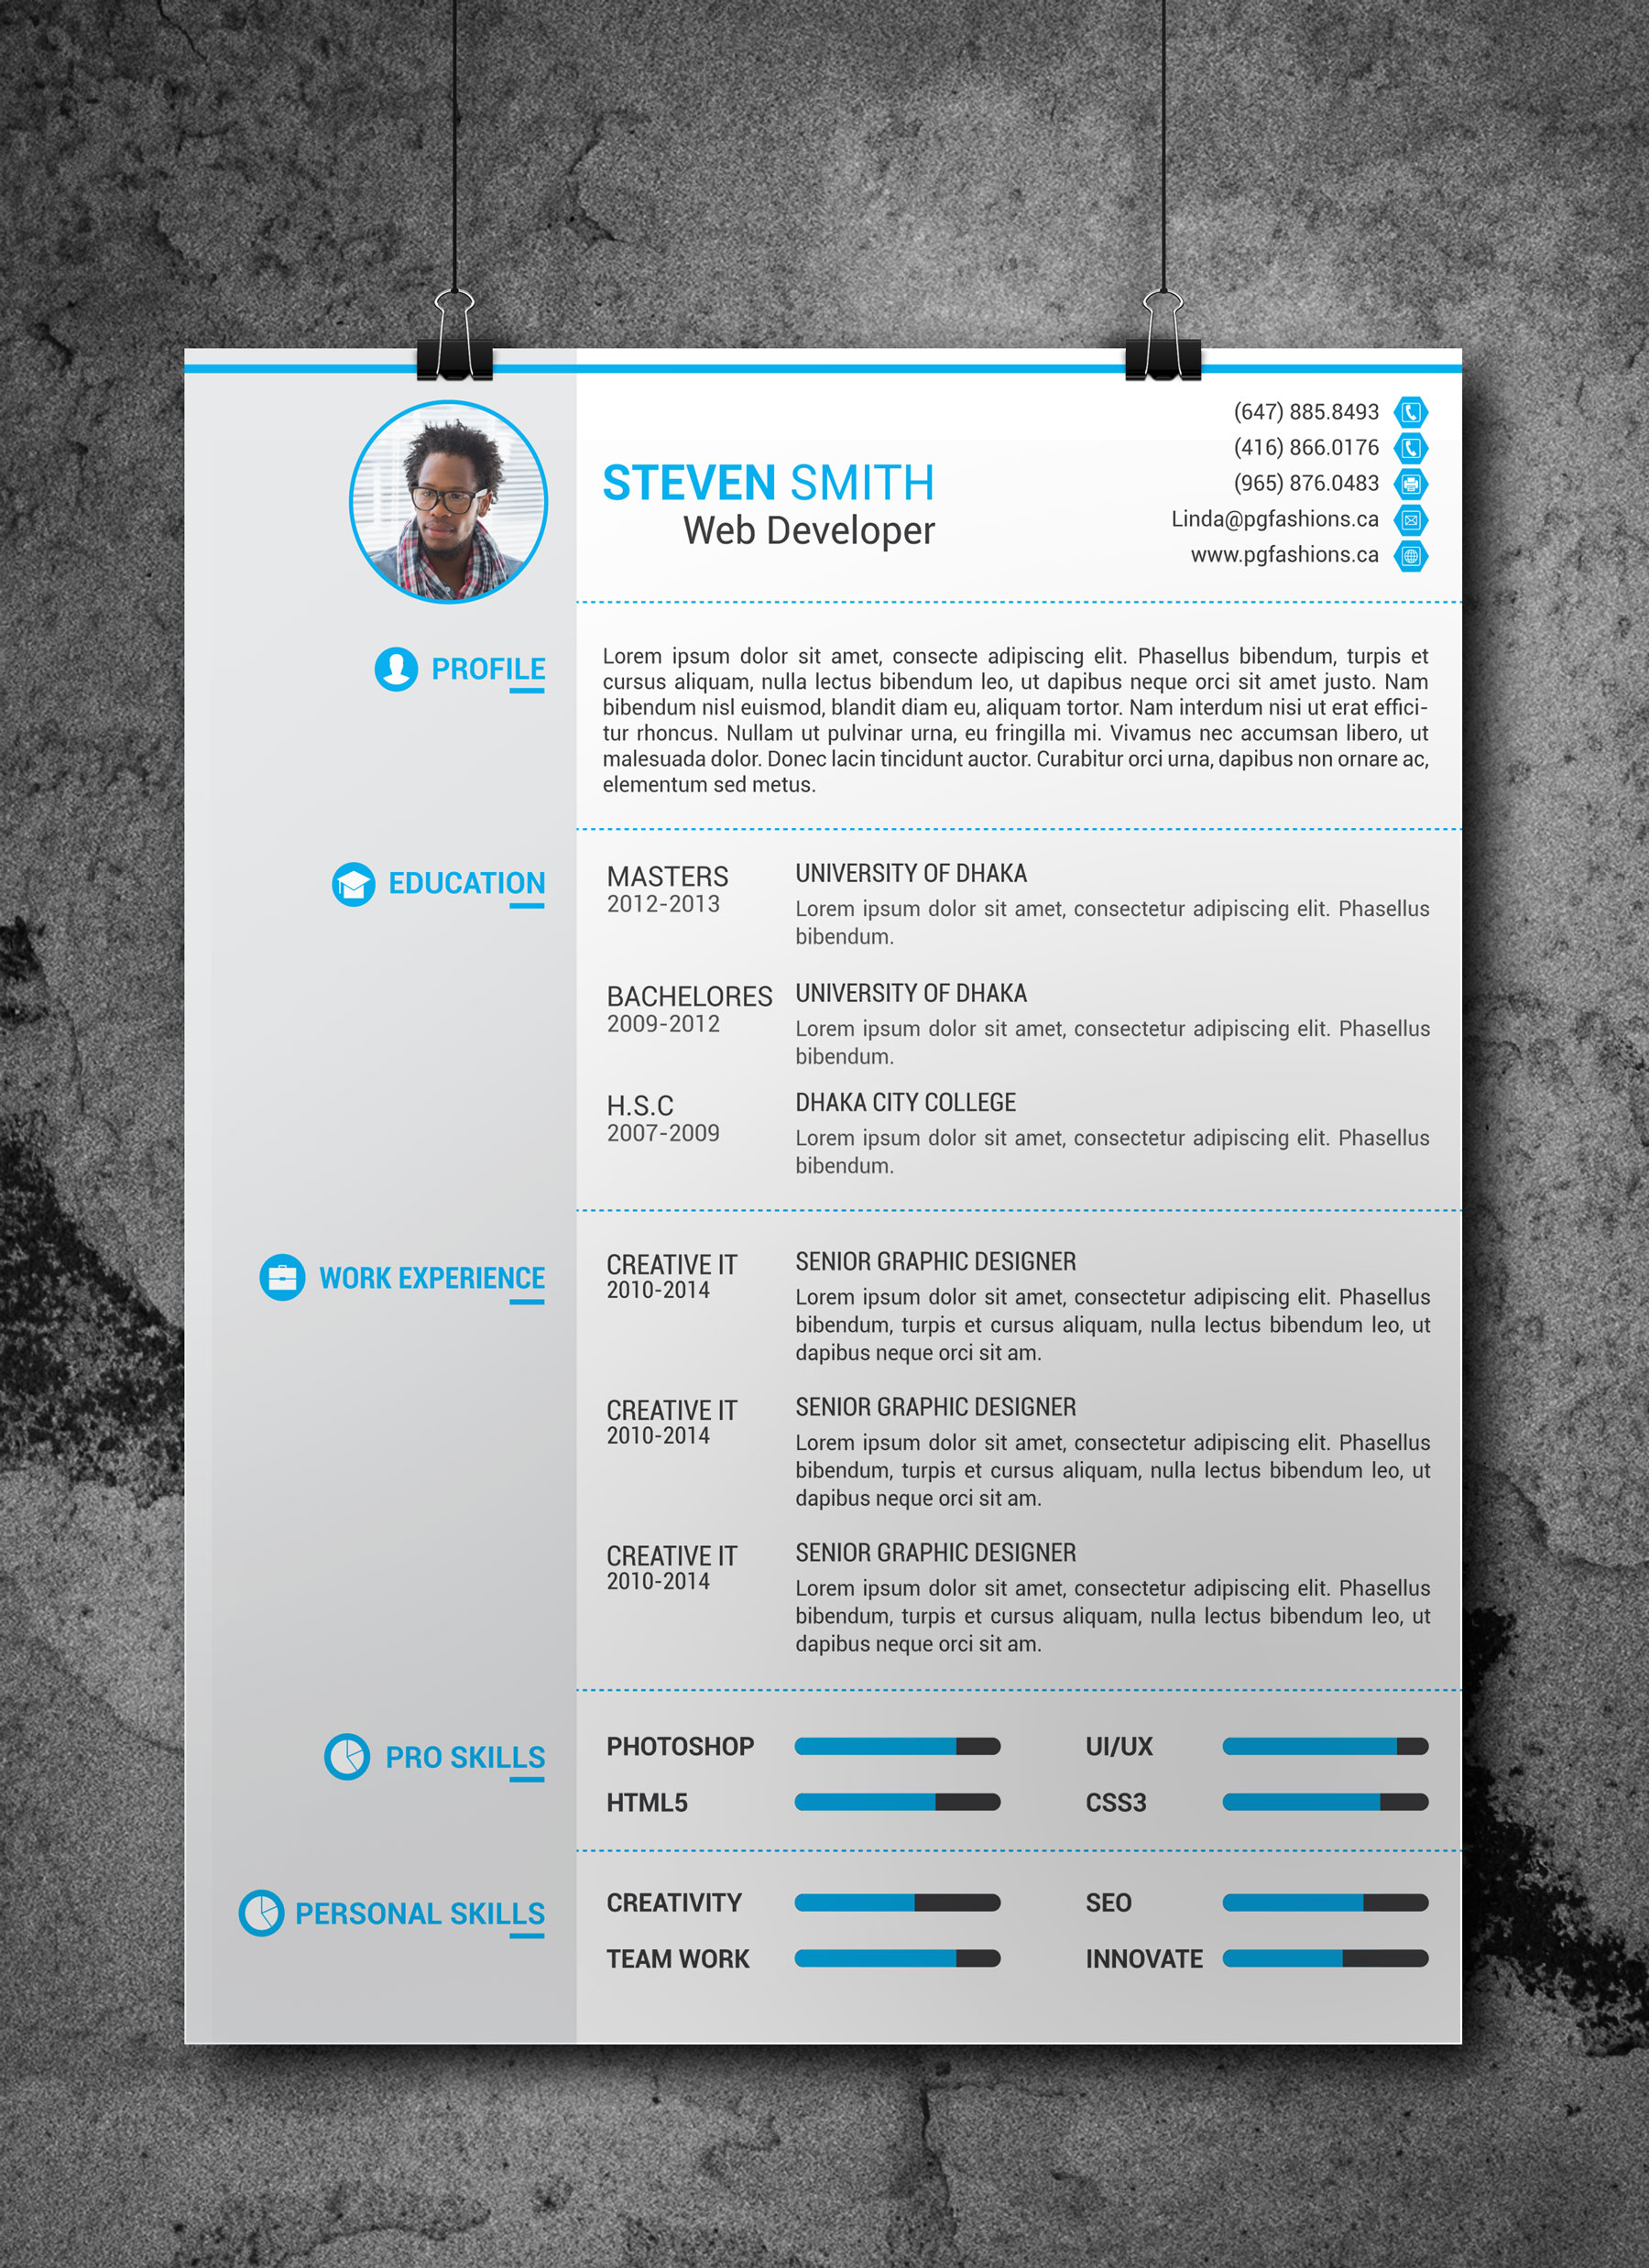 Famous 1 Year Experience Resume Format For Net Developer Tiny 10 Best Resume Services Solid 10 Commandment Coloring Pages 100 Free Printable Resume Builder Young 2014 Weekly Planner Template Dark2014 Year Planner Template CV Template (Free Download) By Arahimdesign On DeviantArt